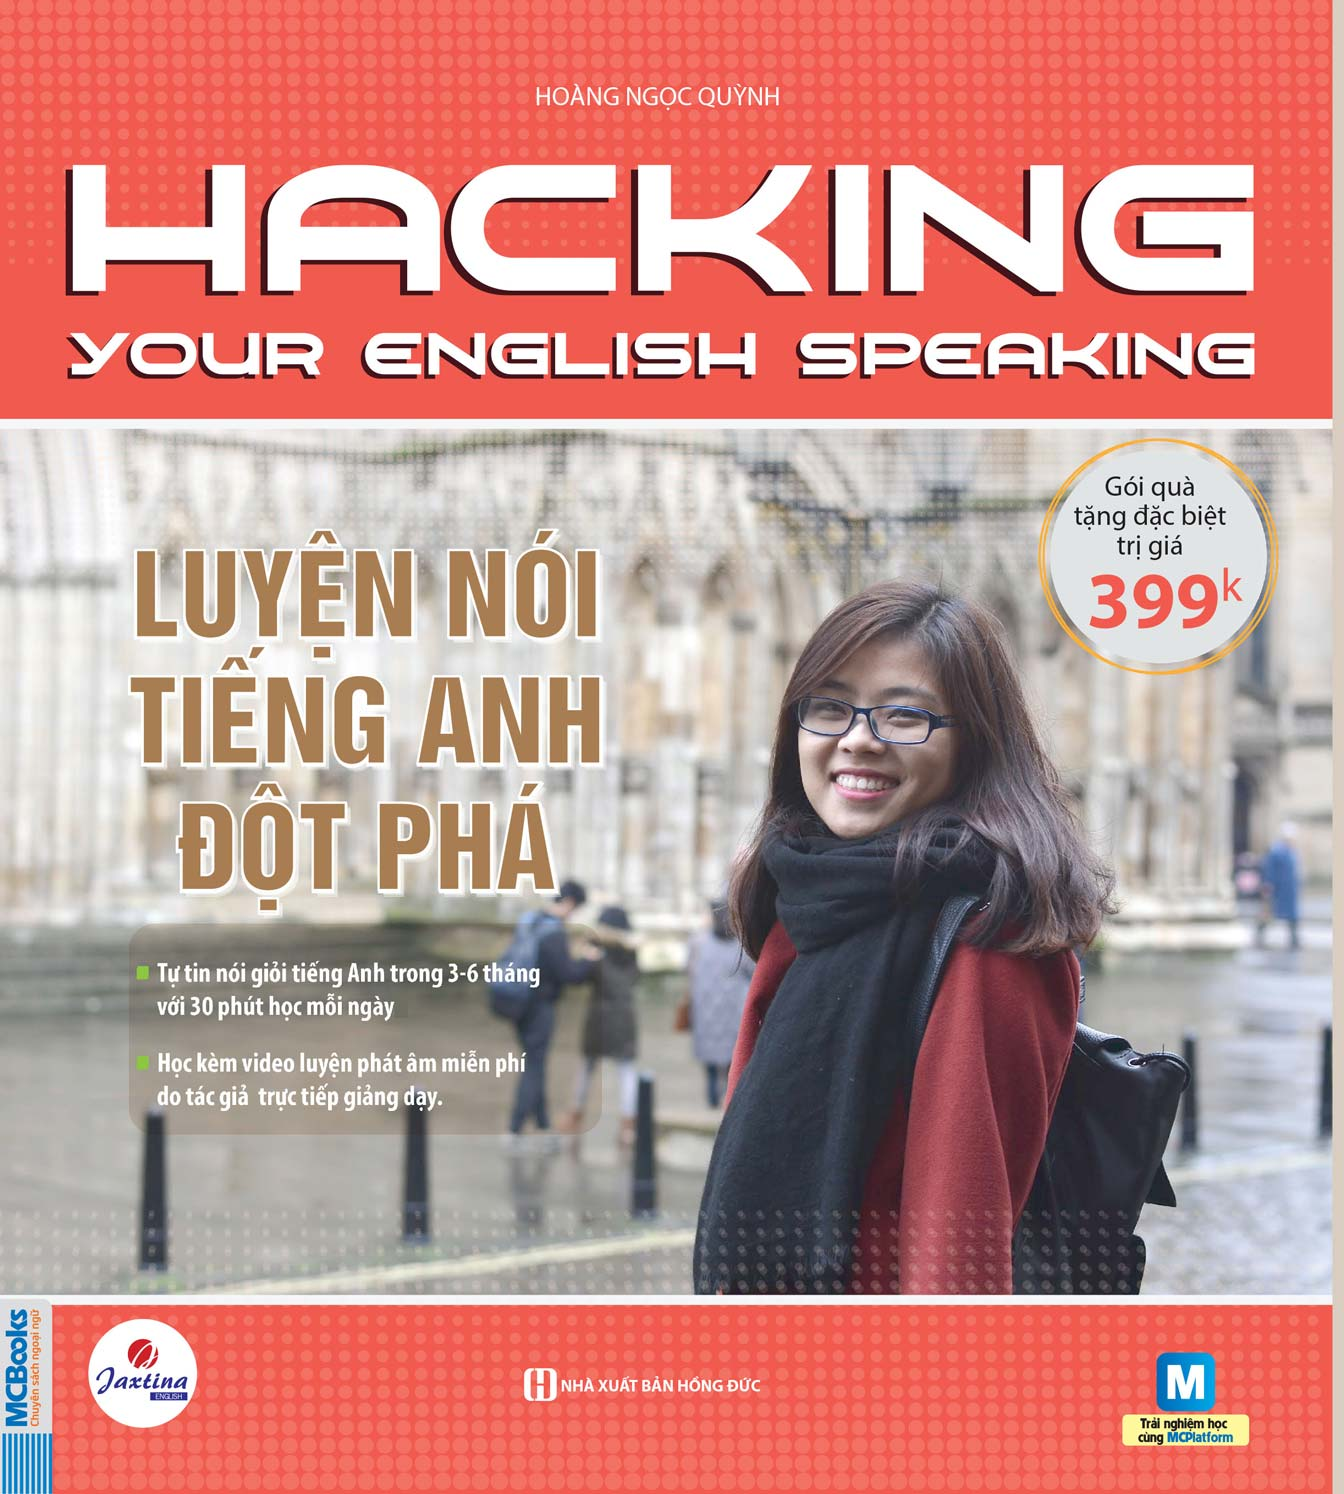 hacking-your-english-speaking-luyen-noi-tieng-anh-dot-pha